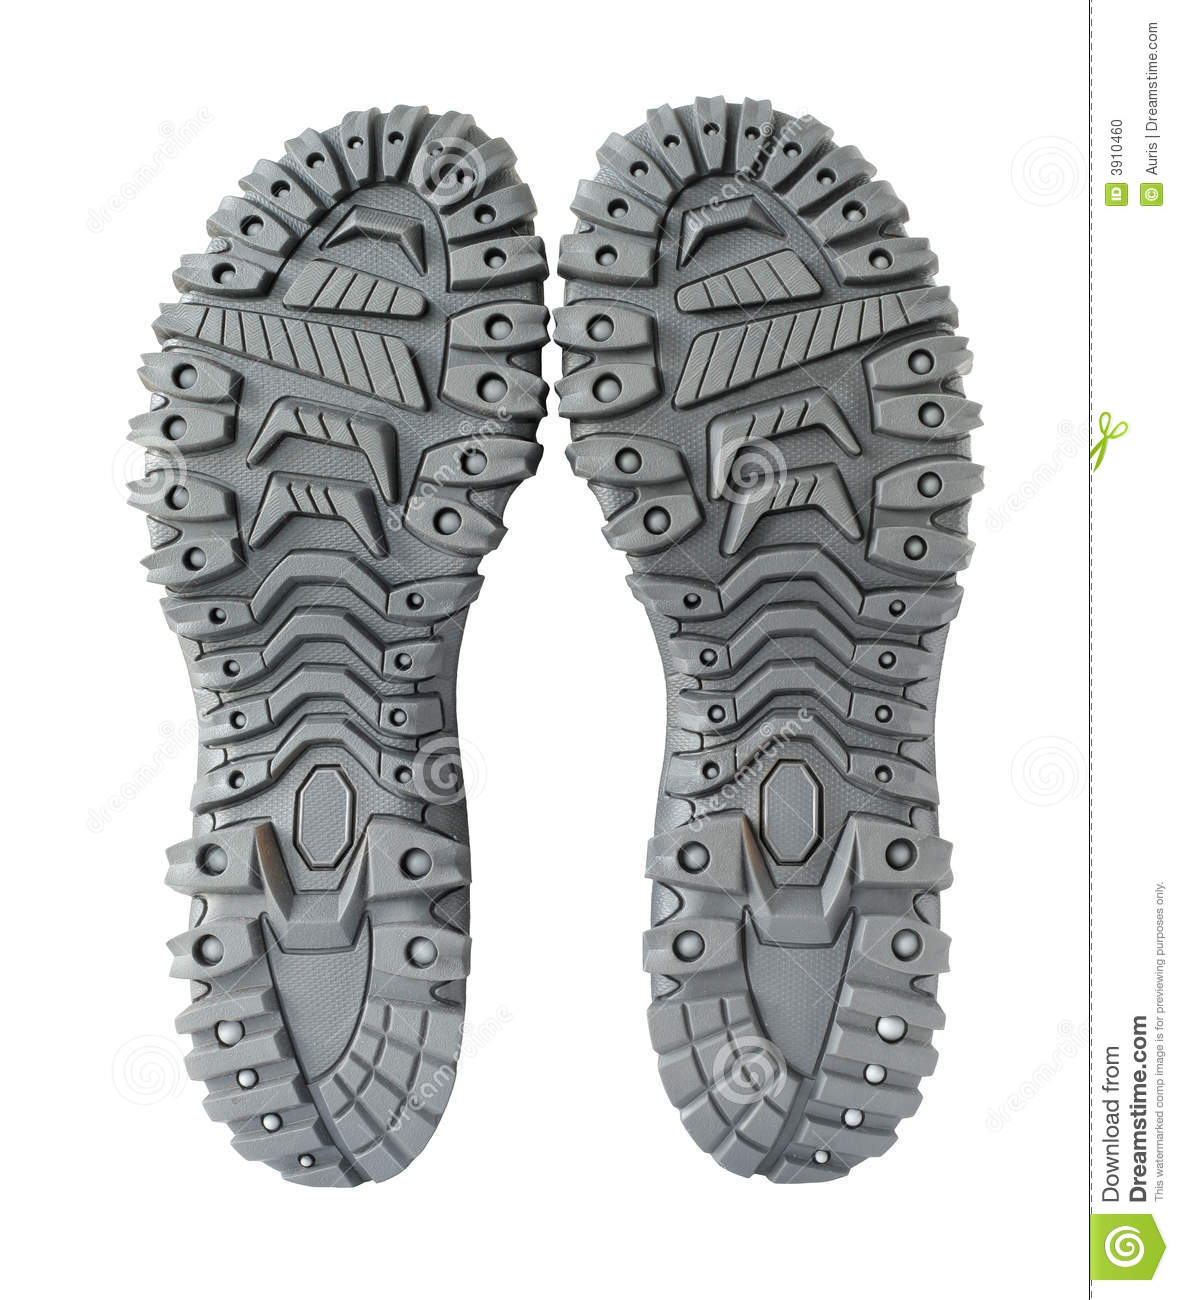 Sole of hiking shoes stock photo. Image